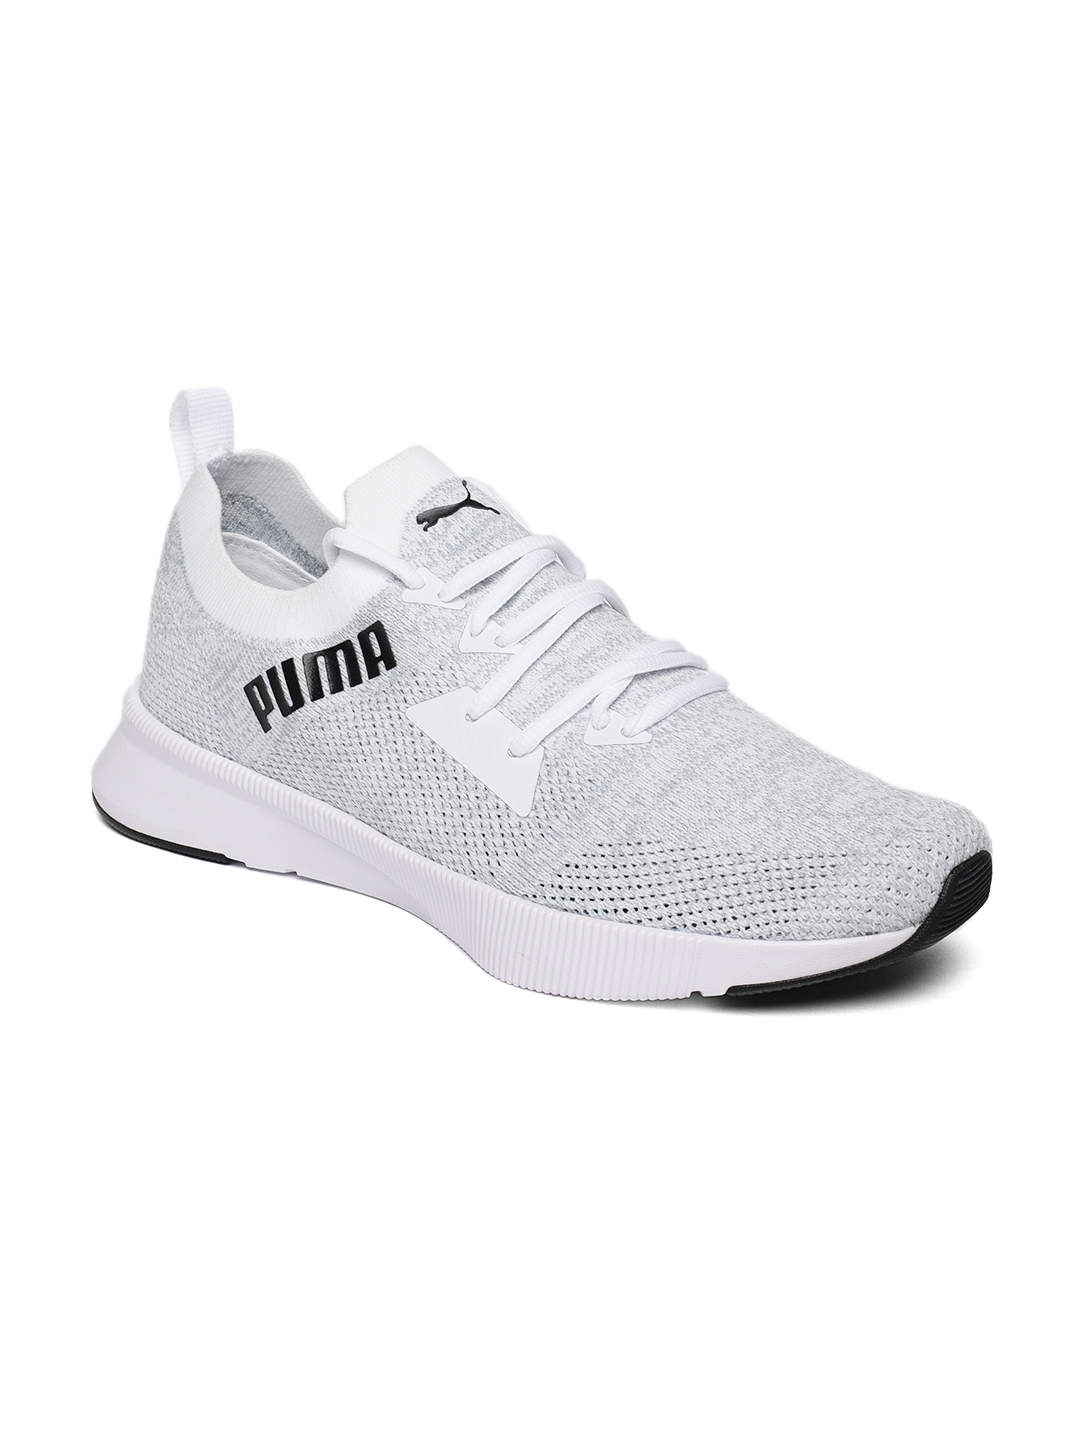 Puma Flyer Runner Mens Neutral Running Trainer Shoe Grey//White